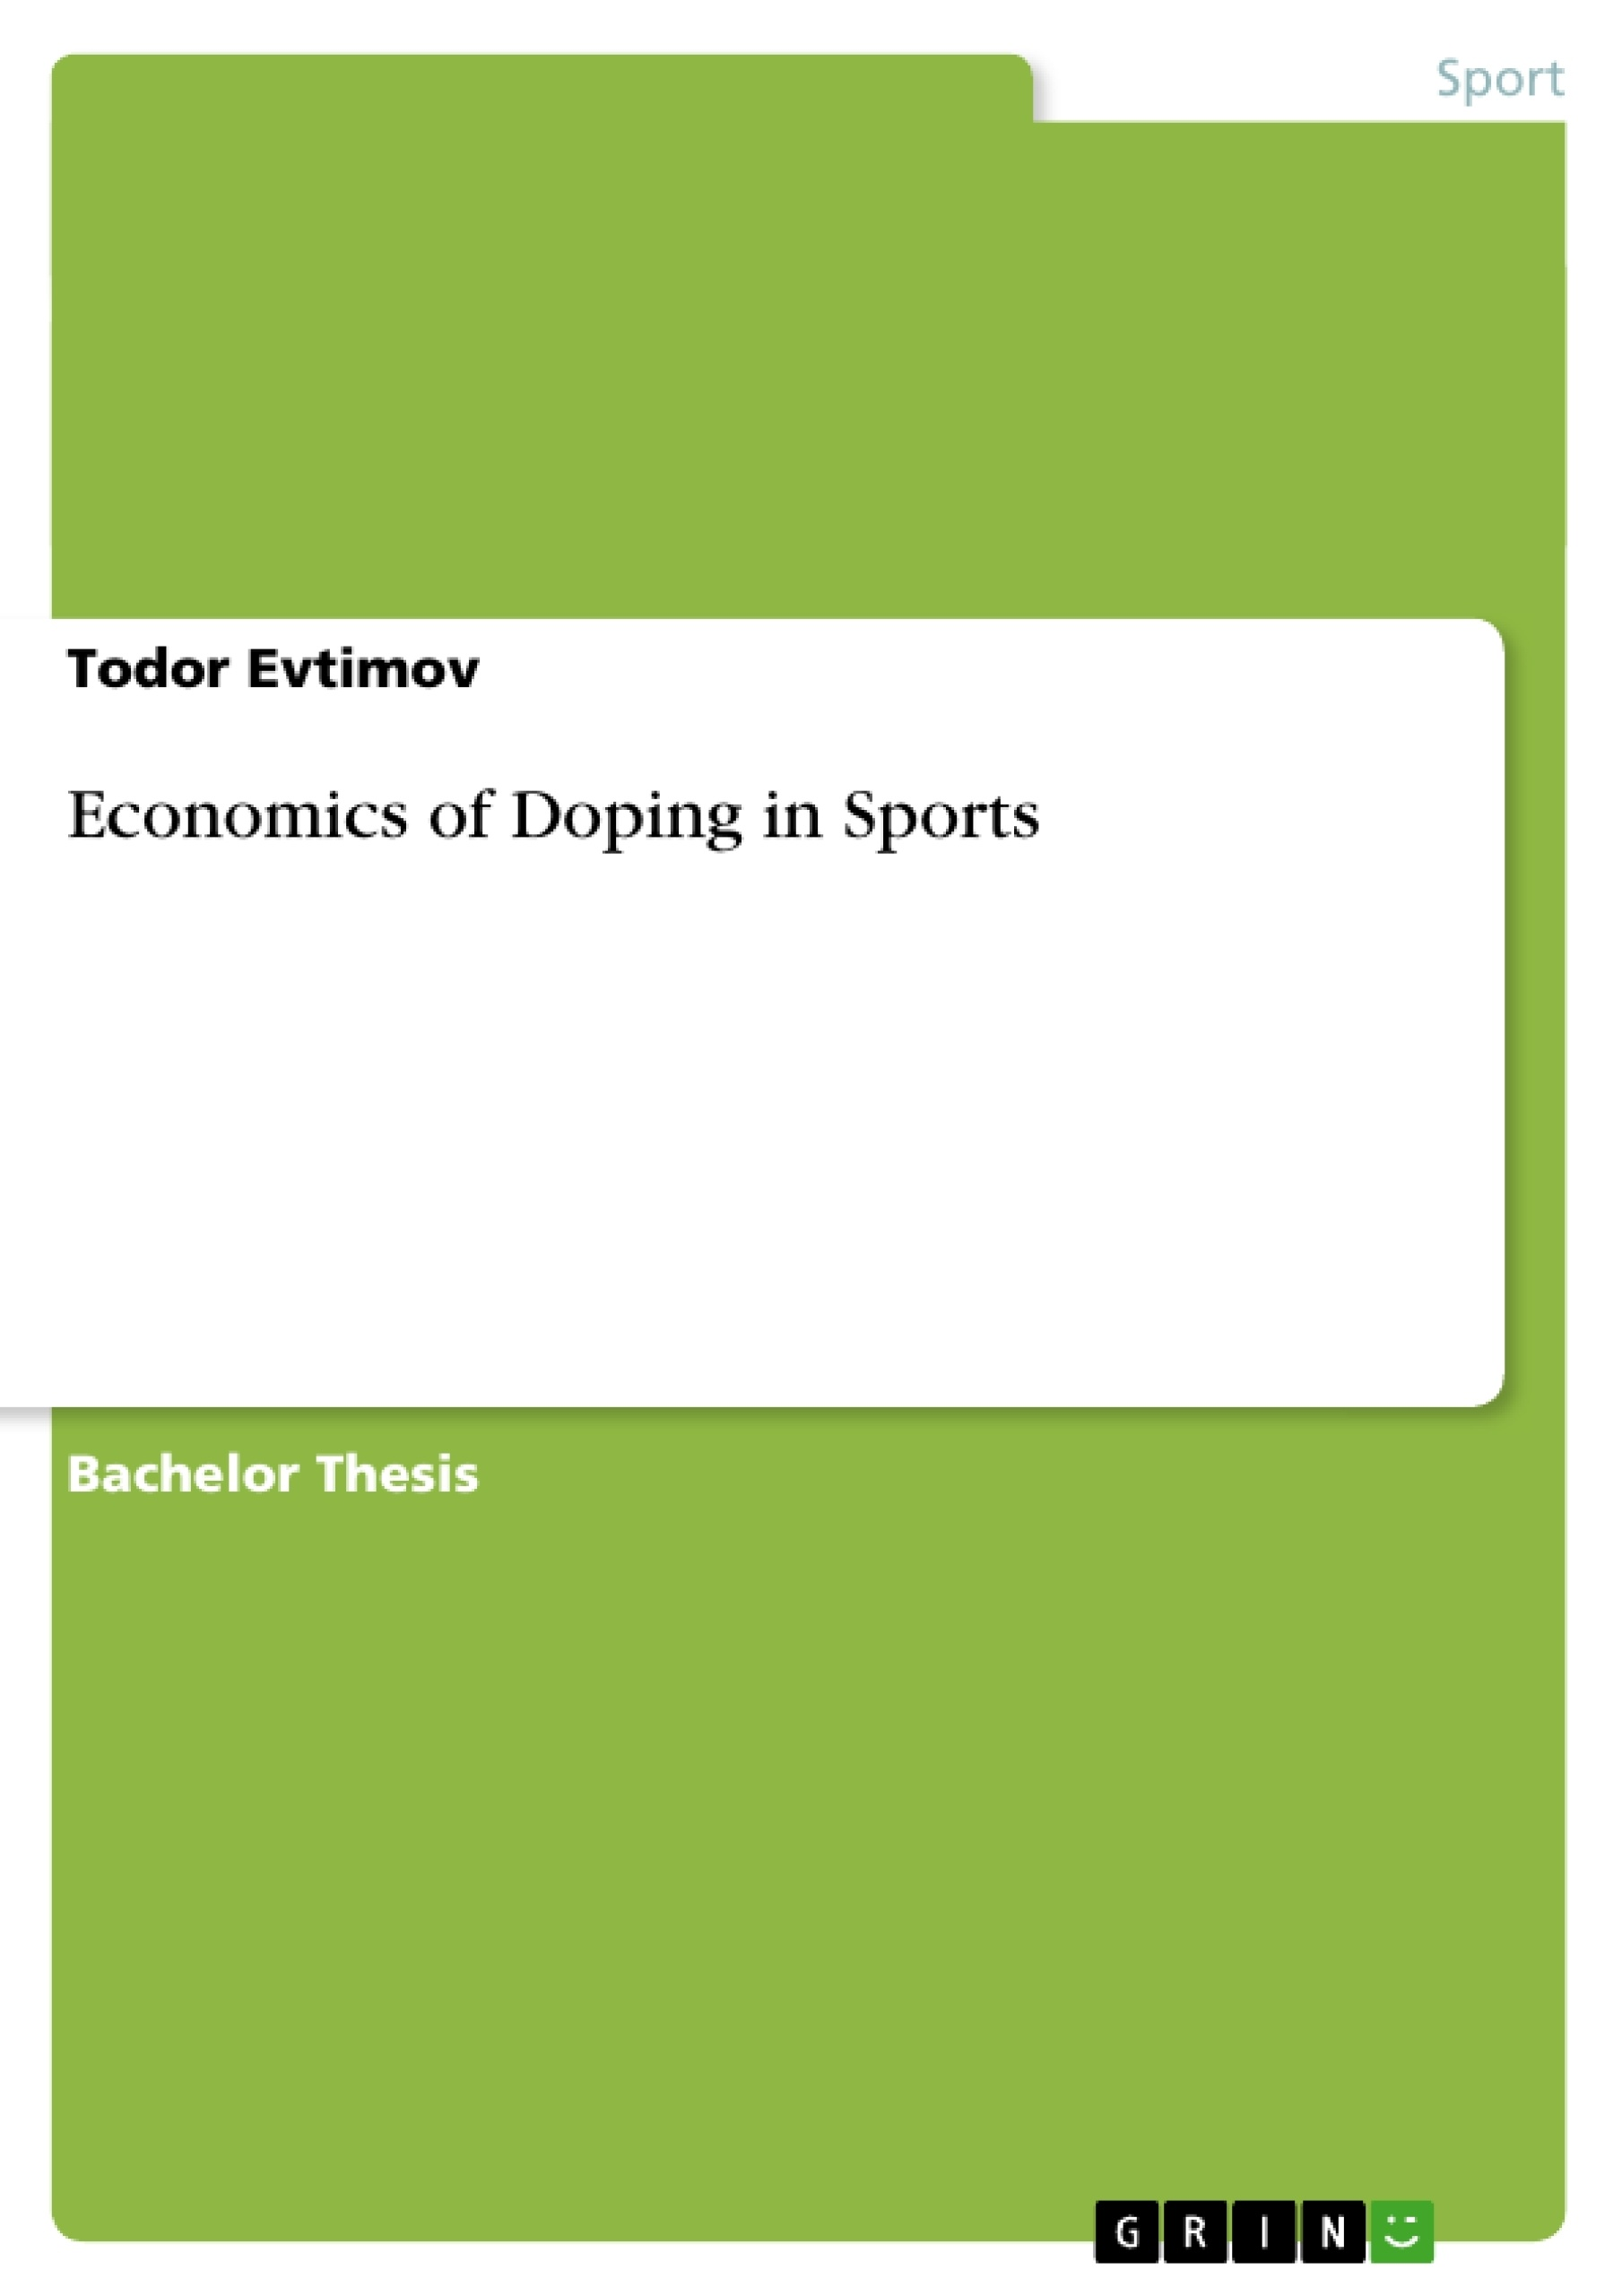 Title: Economics of Doping in Sports